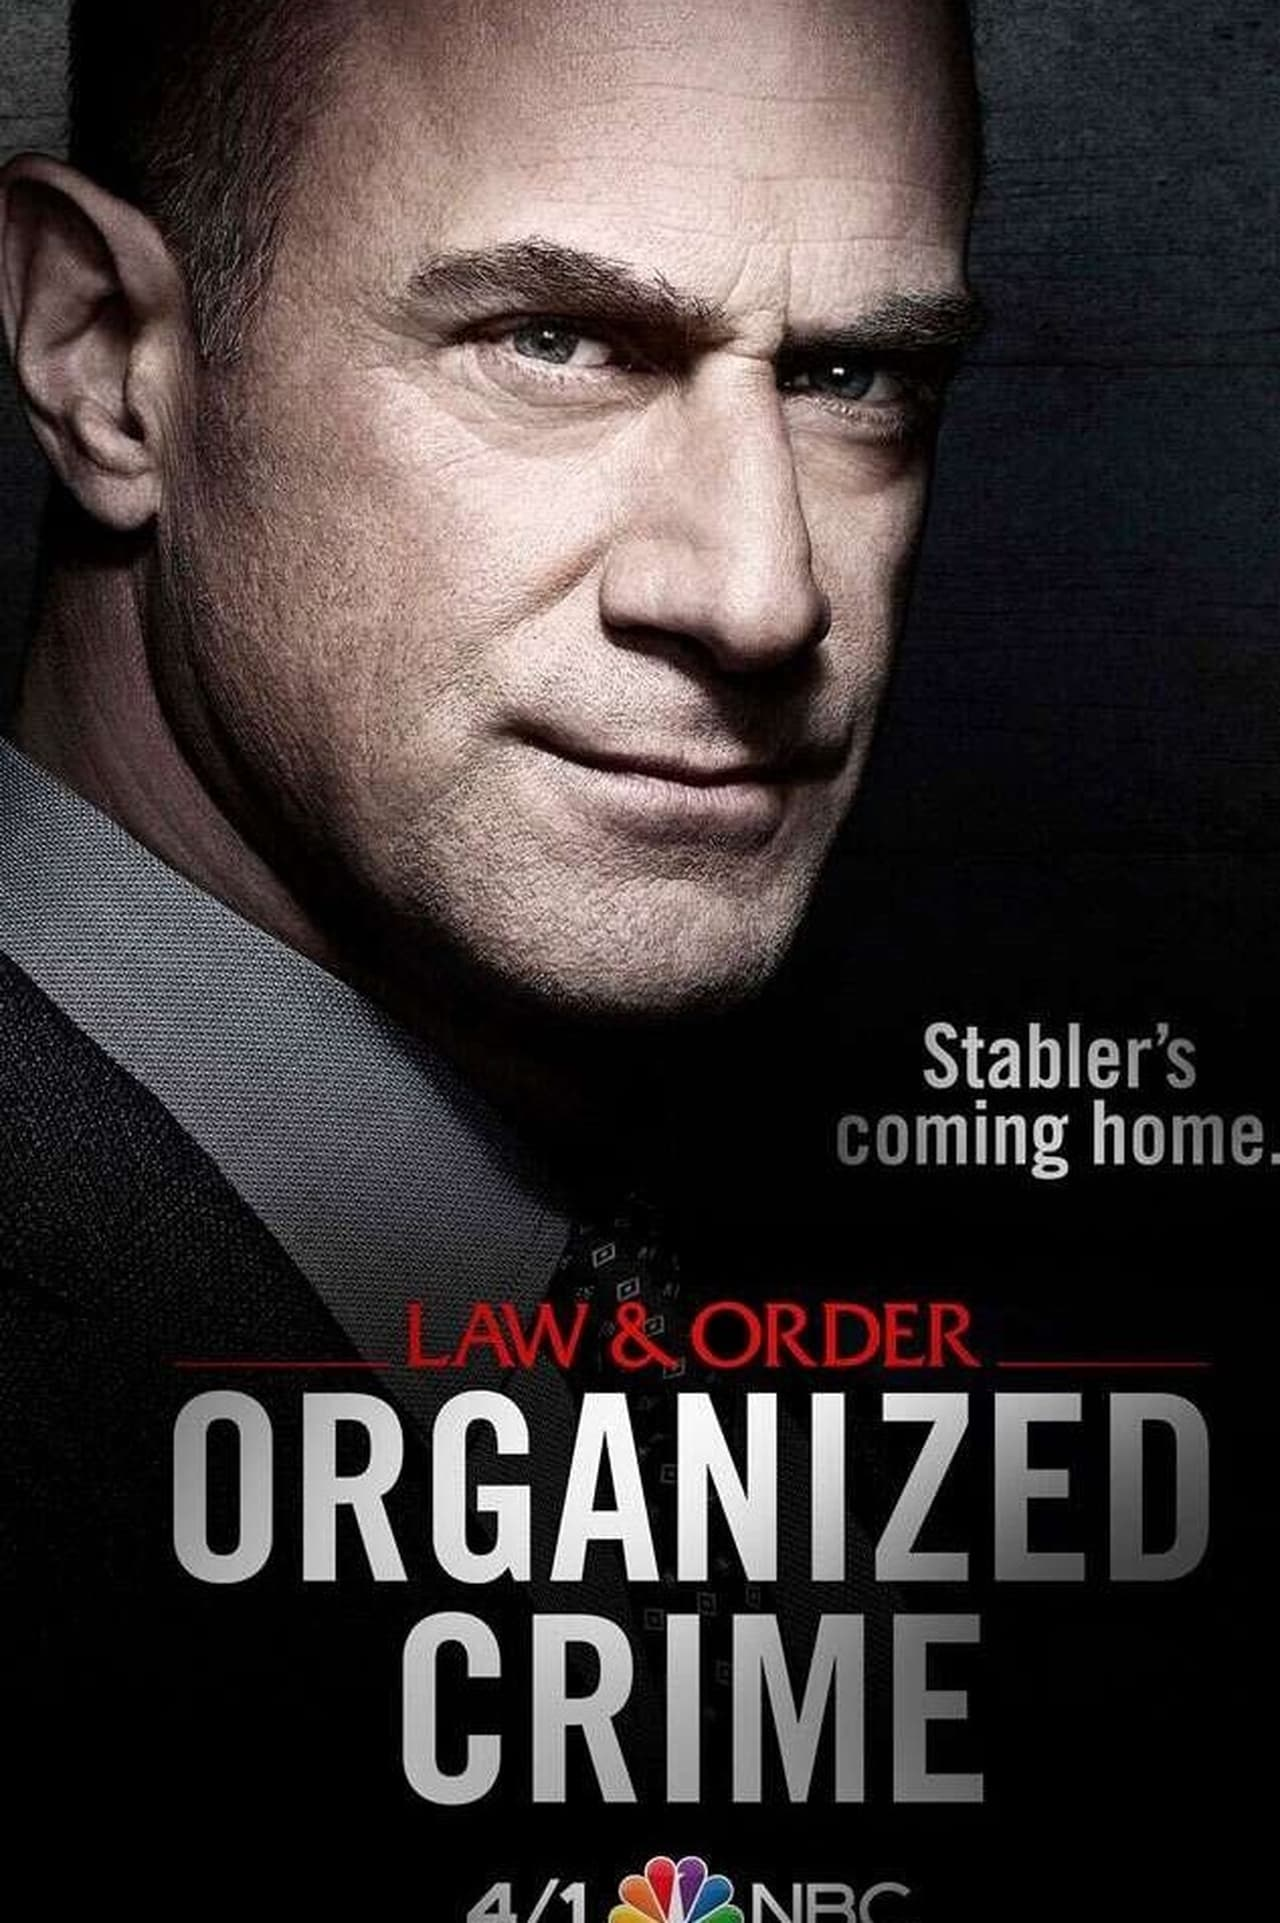 Law & Order: Organized Crime (season 1)